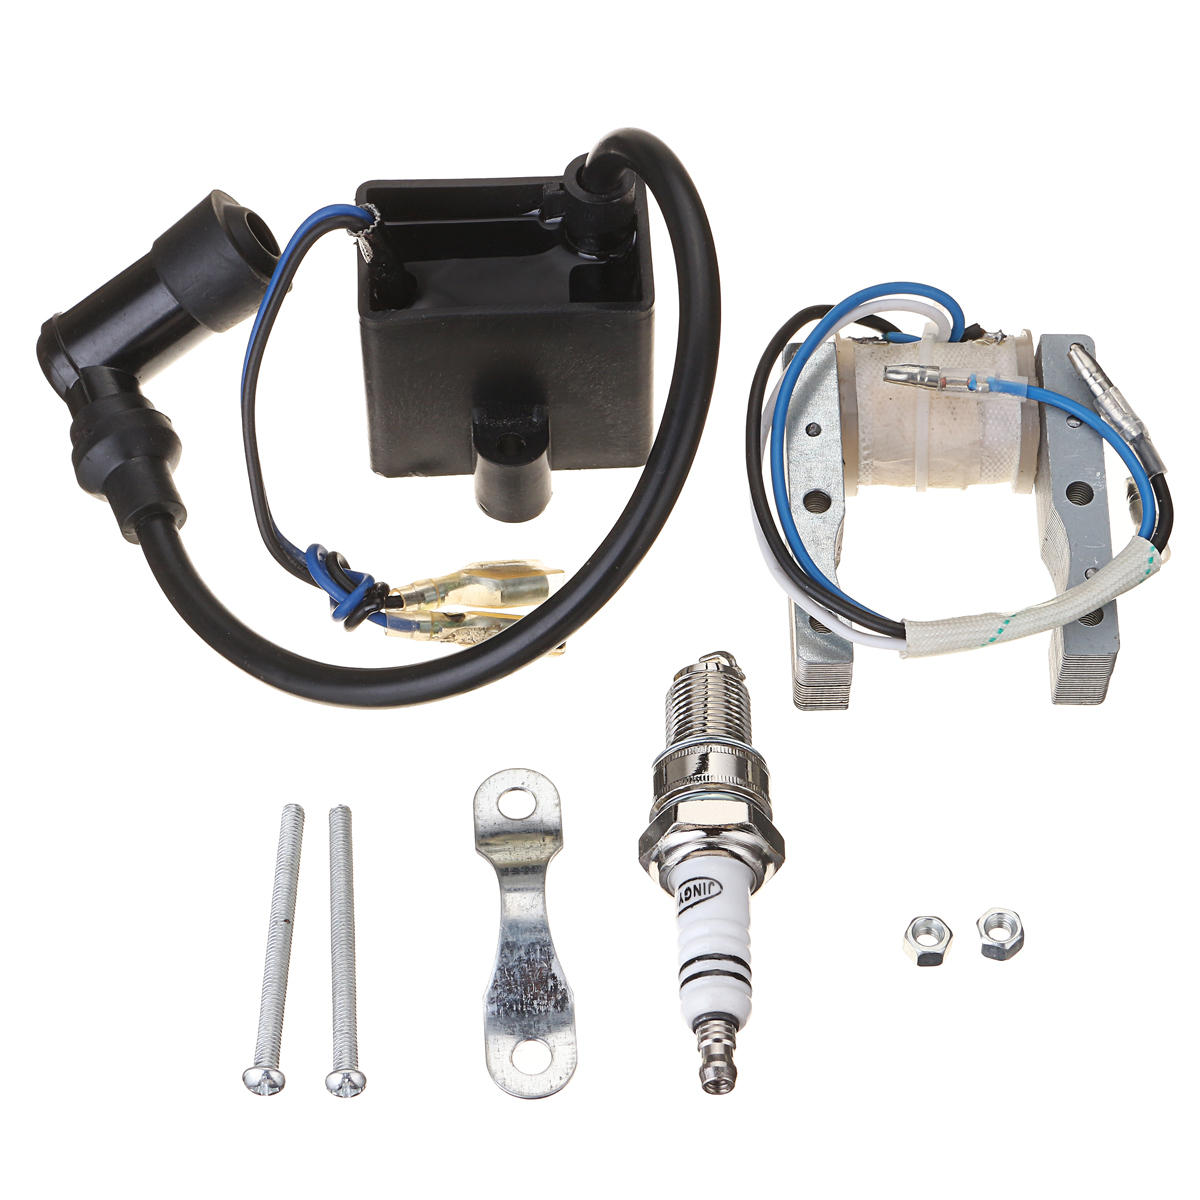 2 CDI Ignition 1 spark plug For 50cc 80cc Motor Motorized Bicycle parts